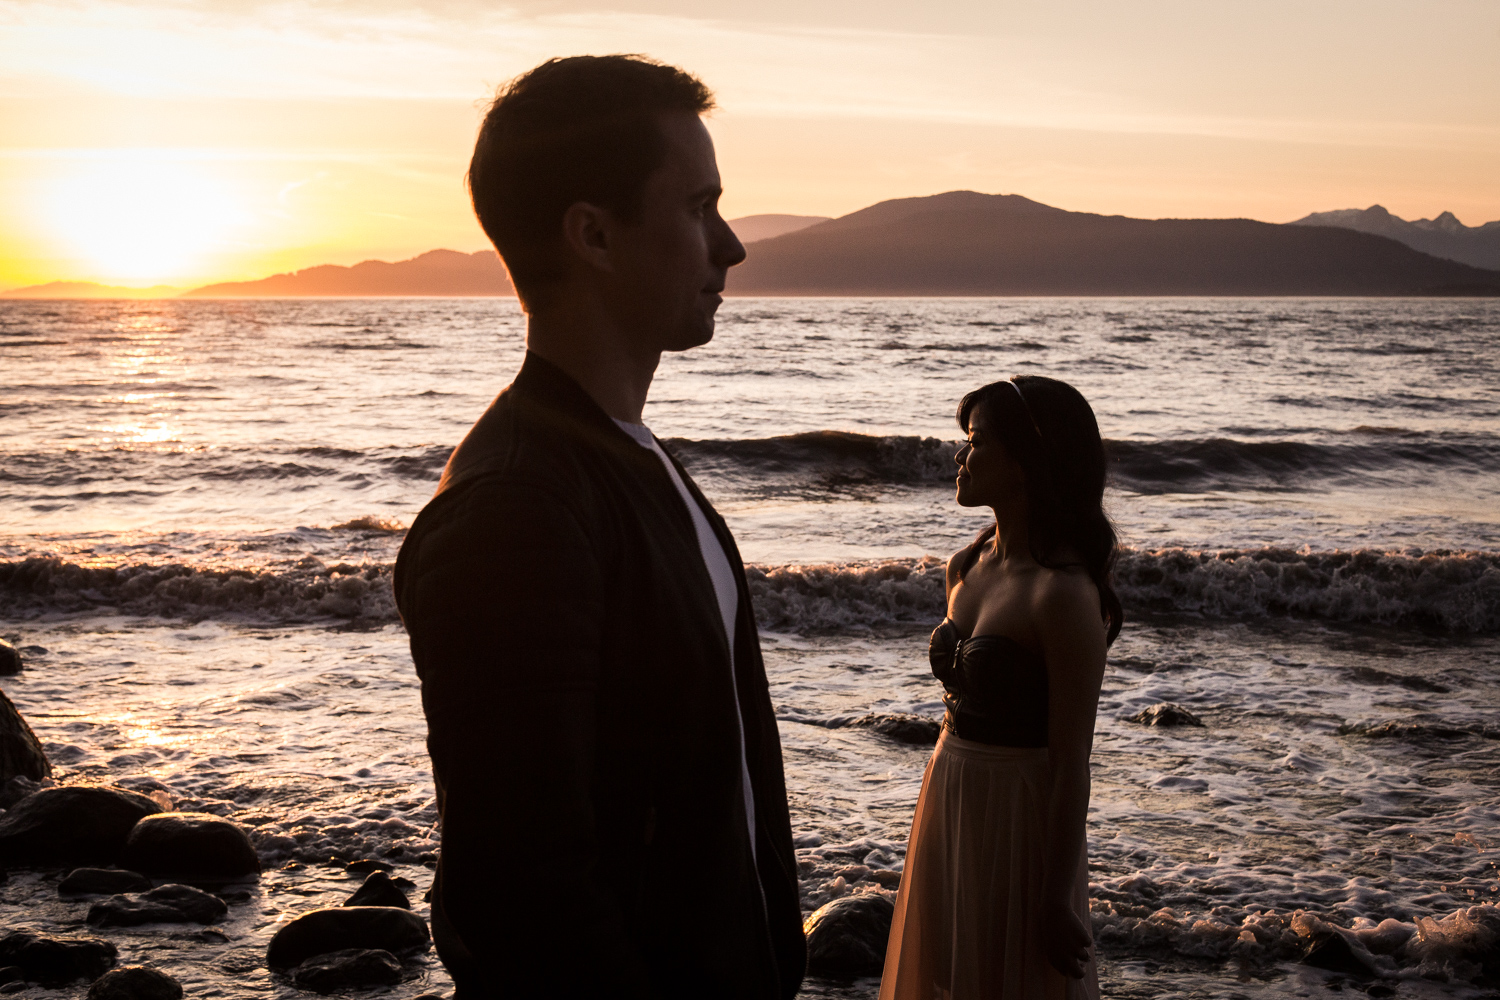 SPANISH BANKS ENGAGEMENT – DAVE & CERYS